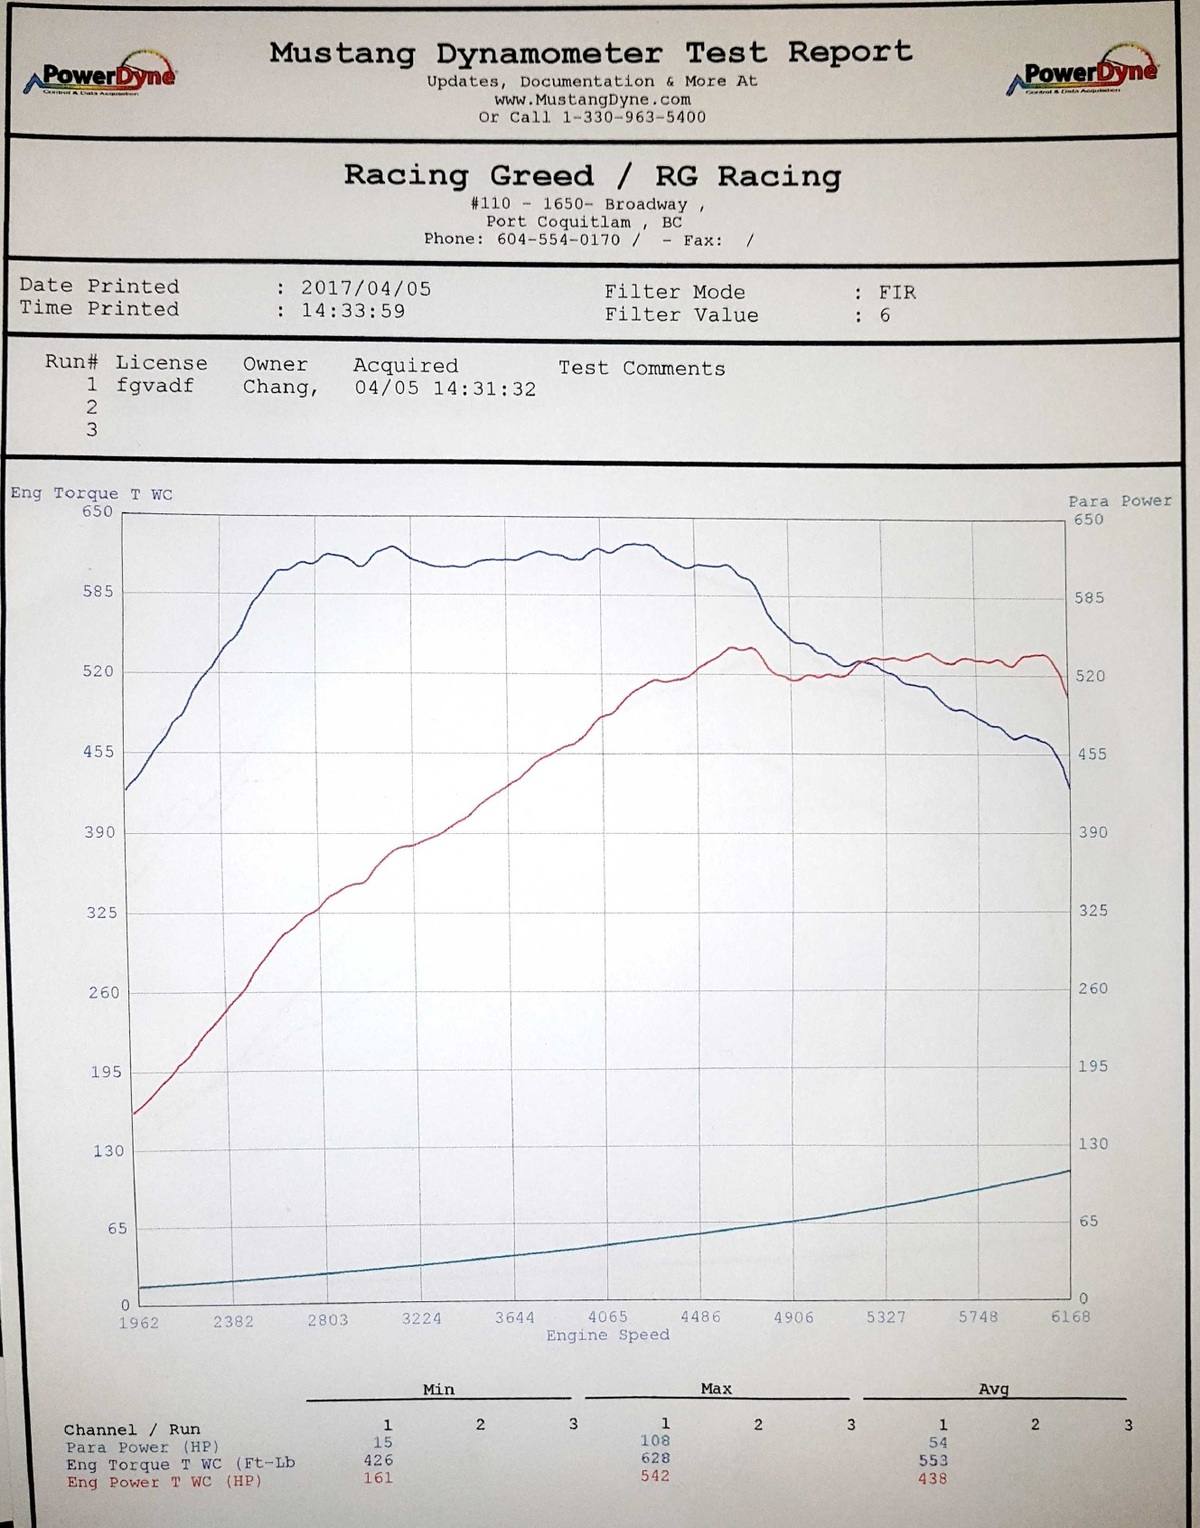 Mercedes-Benz E550 Dyno Graph Results